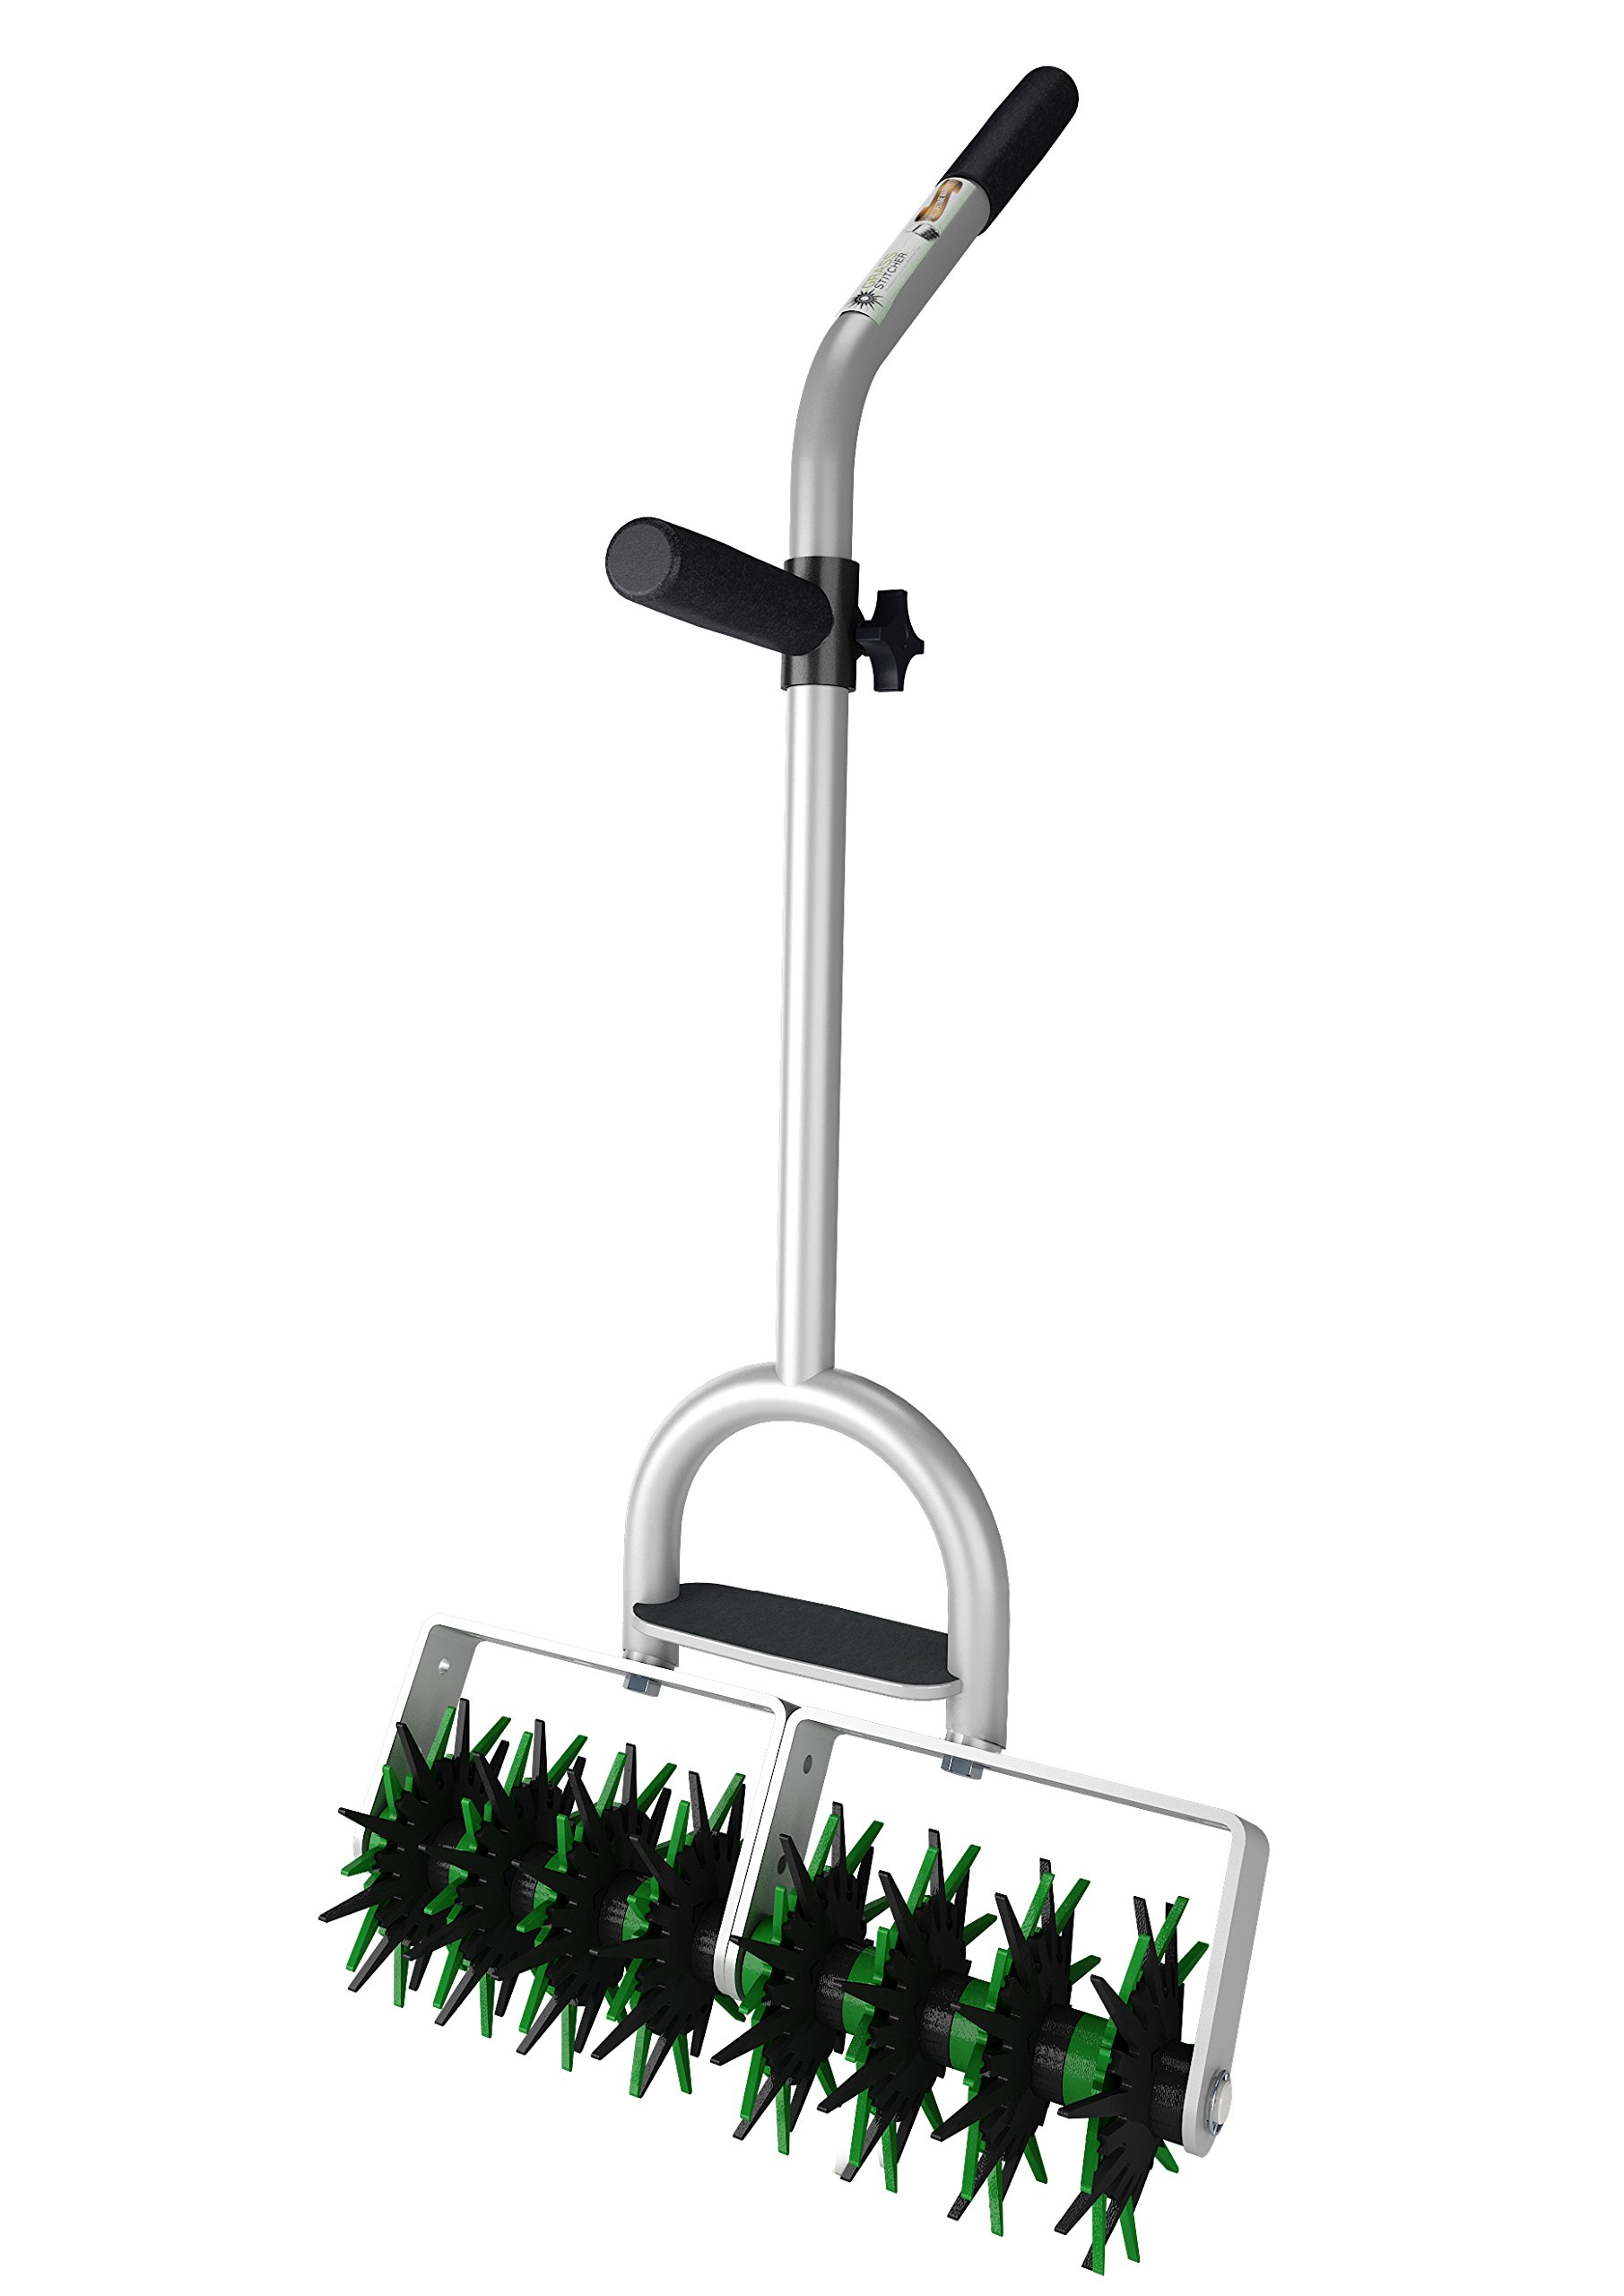 EnRoot Products Seed Stitcher Pro - Double Head- Easy Lawn Grass Garden Seed Planting Tool for Landscapers, Homeowners, Silver by EnRoot Products